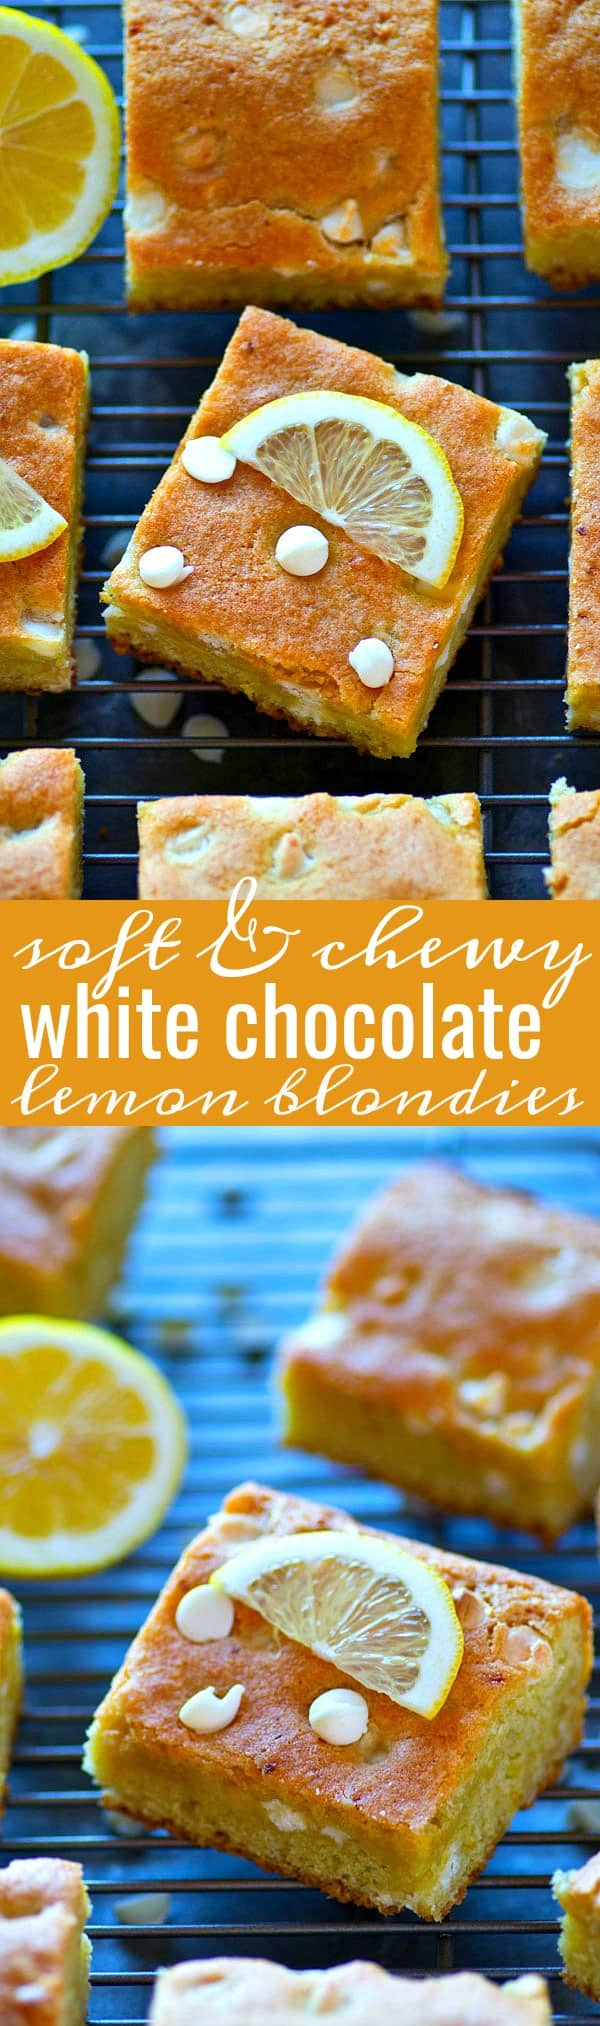 Soft, chewy, and loaded with intense lemon flavor and tons of white chocolate, these white chocolate lemon blondies are seriously addictive and SO easy to throw together for a last-minute dessert!